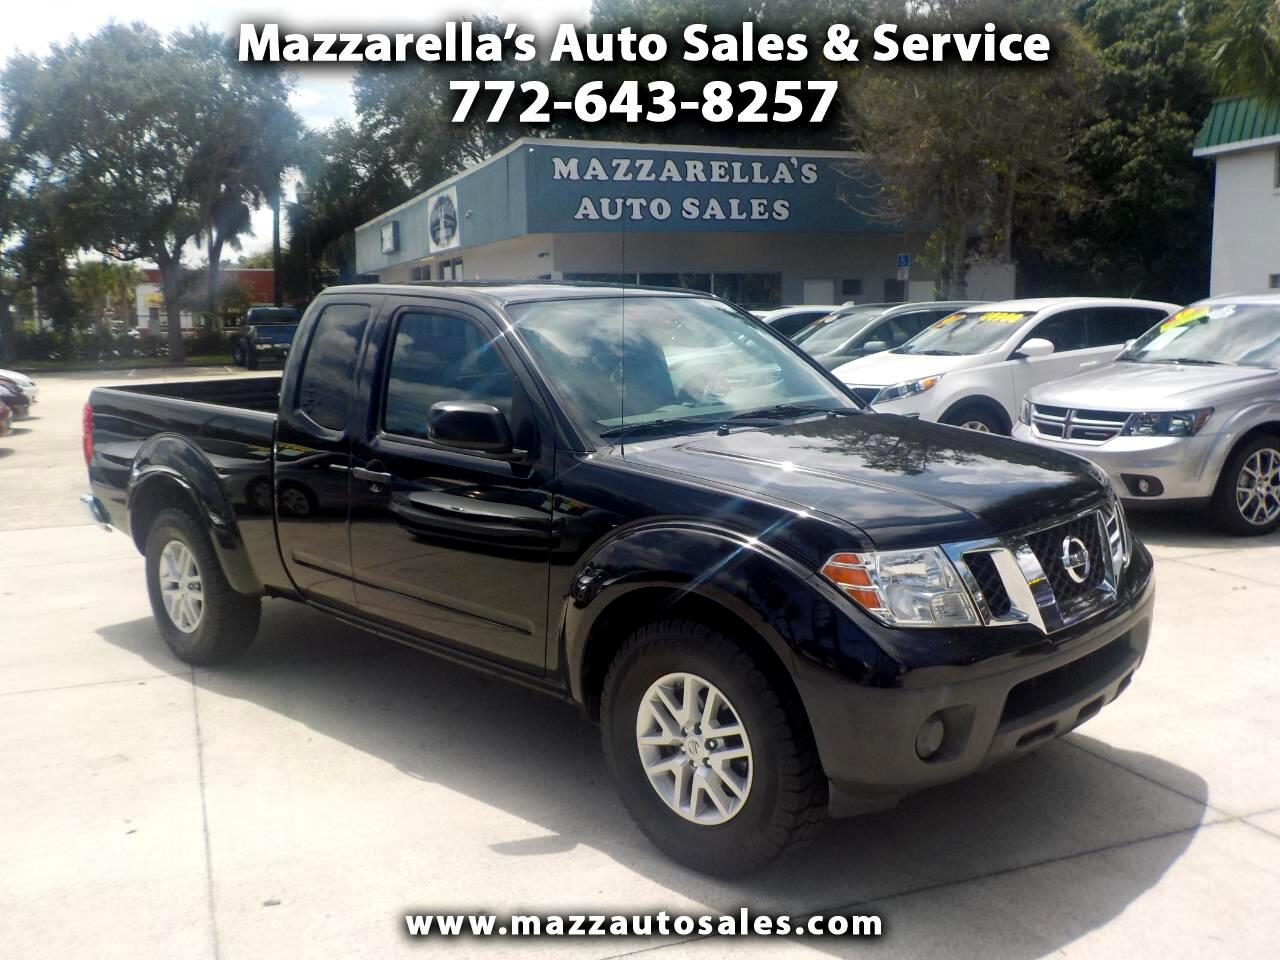 Used Cars for Sale Vero Beach FL 32960 Mazzarella's Auto